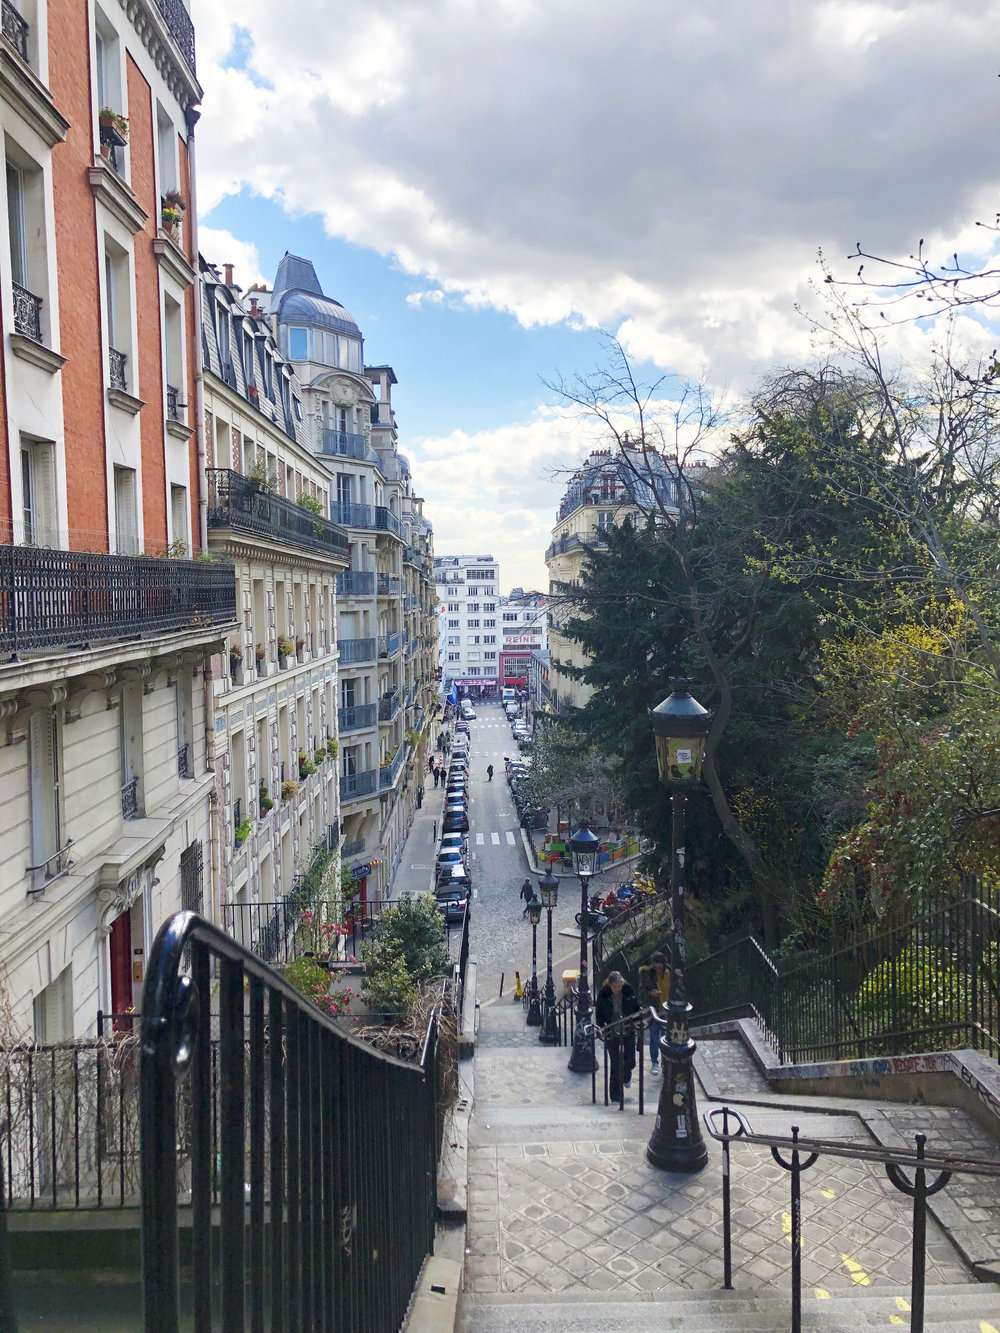 Heading up the stairs towards Montmartre